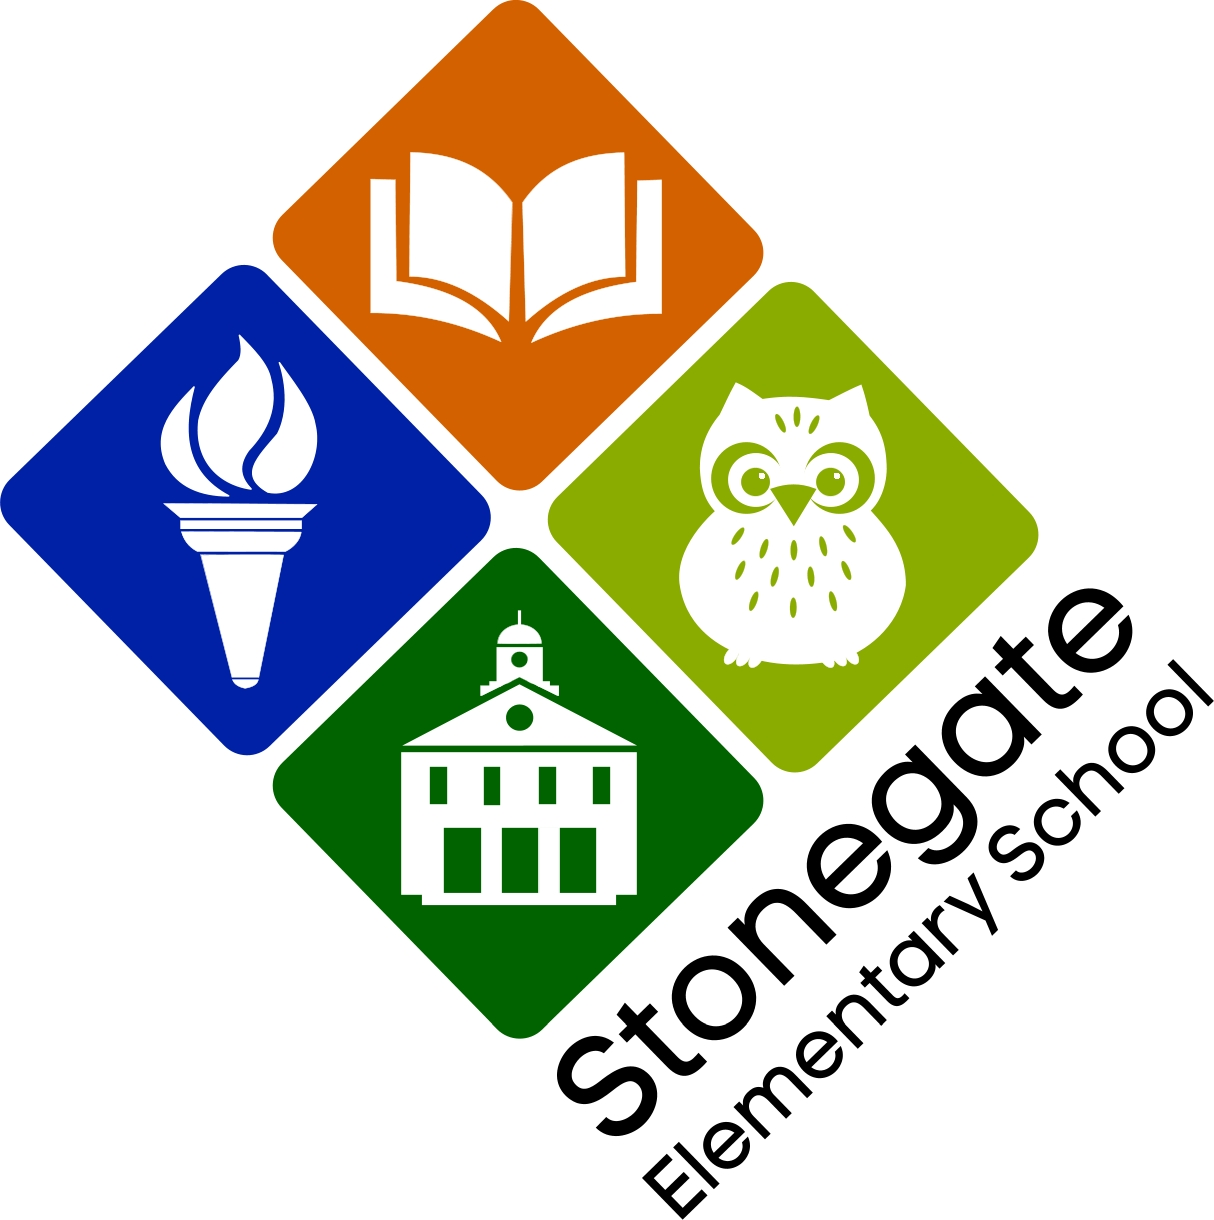 SGES Full Color Logo.jpg